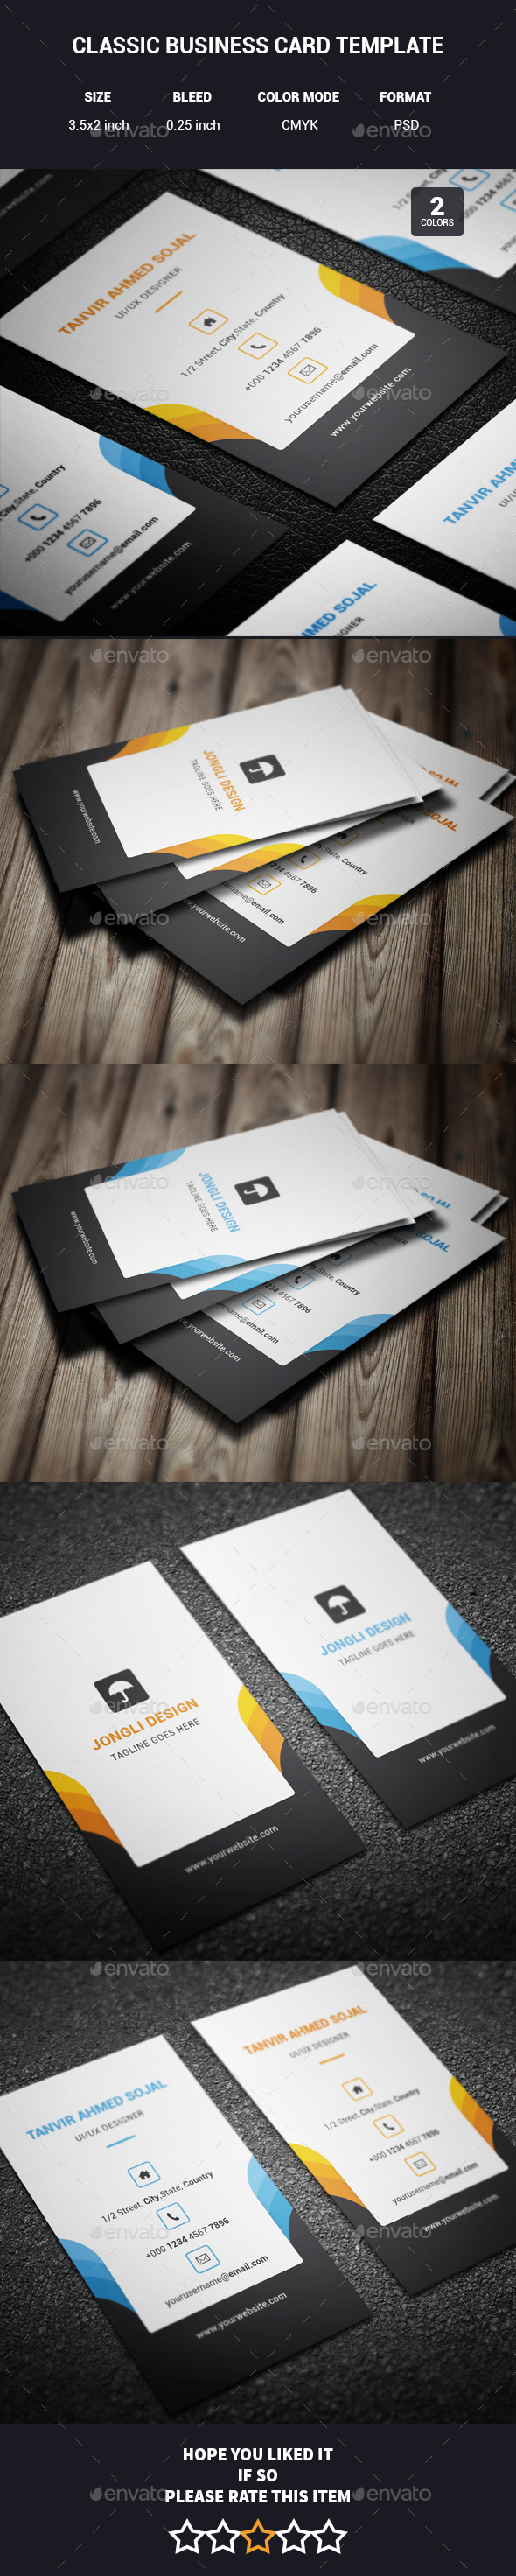 Classic Business Card Template - Corporate Business Cards